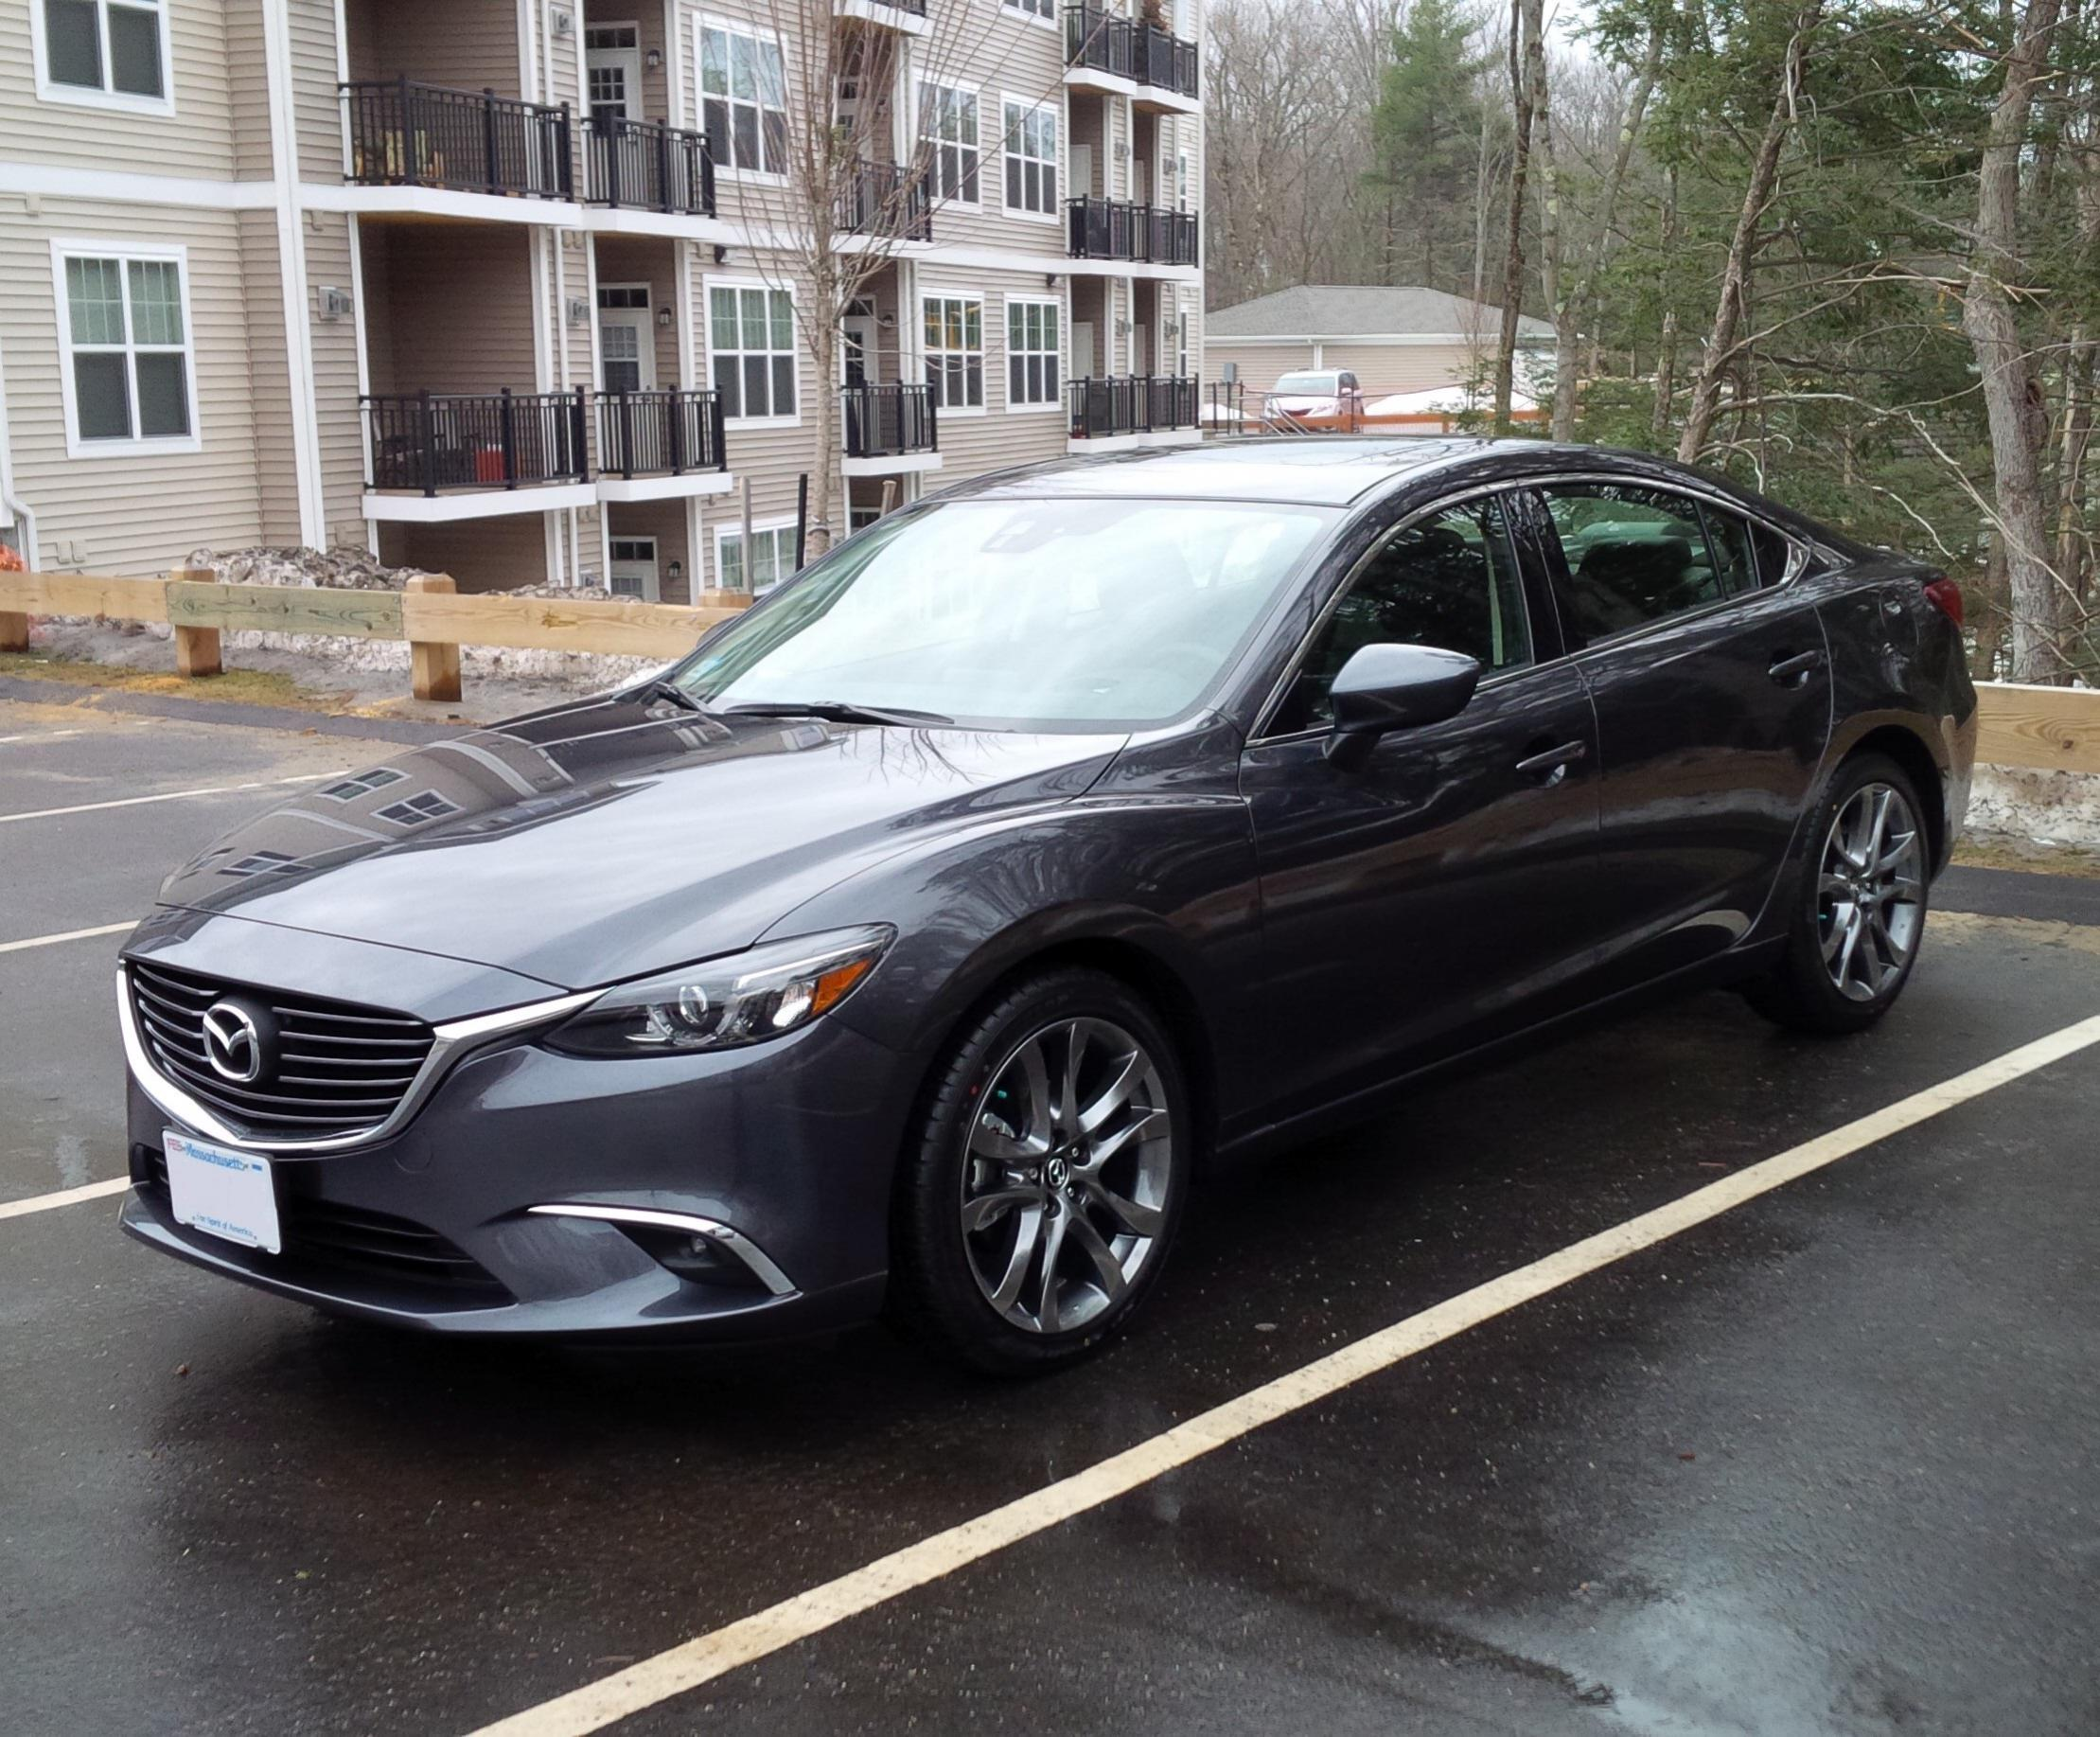 2016 Mazda 6 Gen3 5 General Discussion Page 149